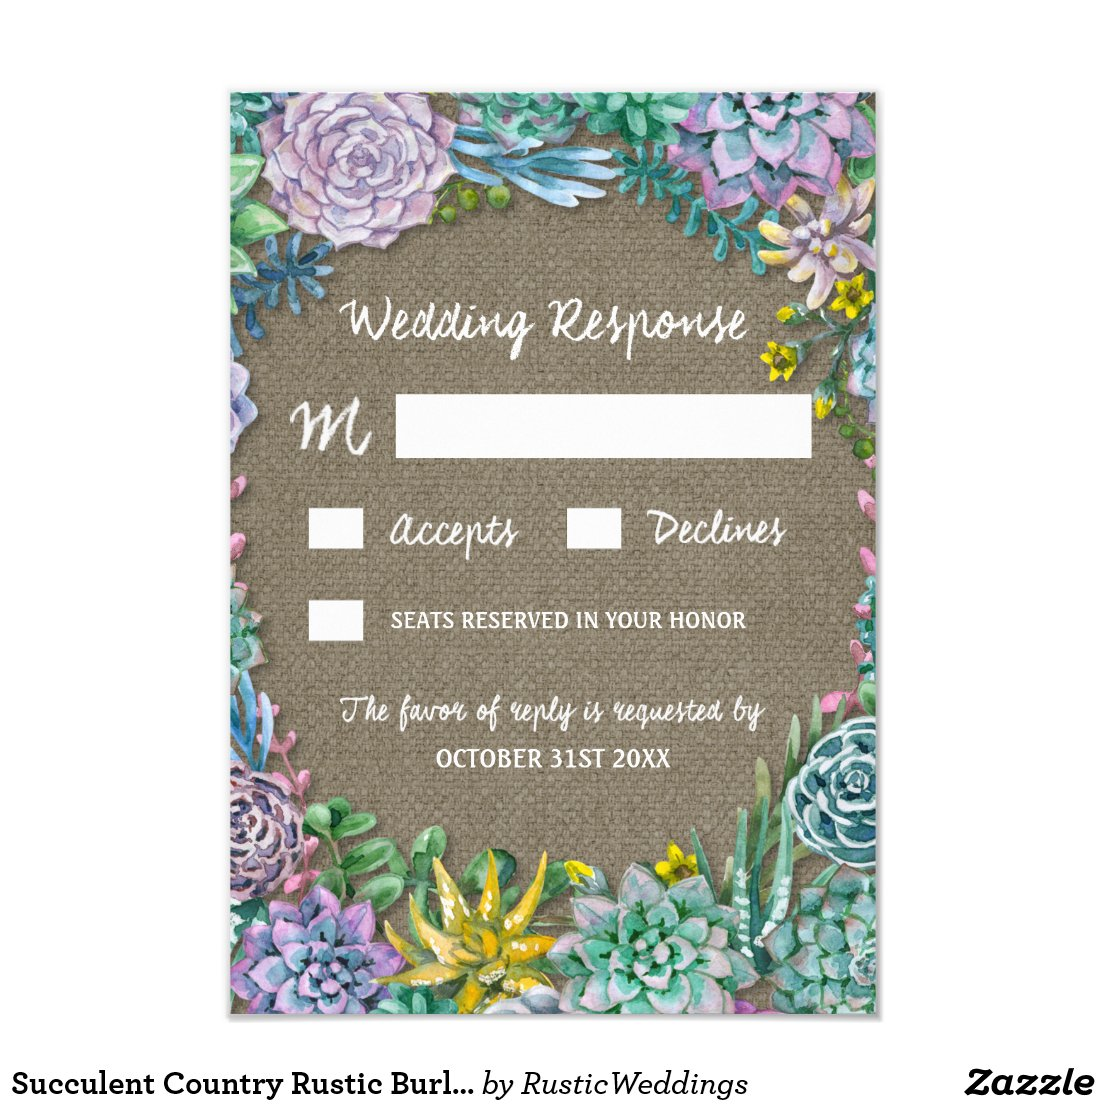 Succulent Country Rustic Burlap Wedding RSVP Cards